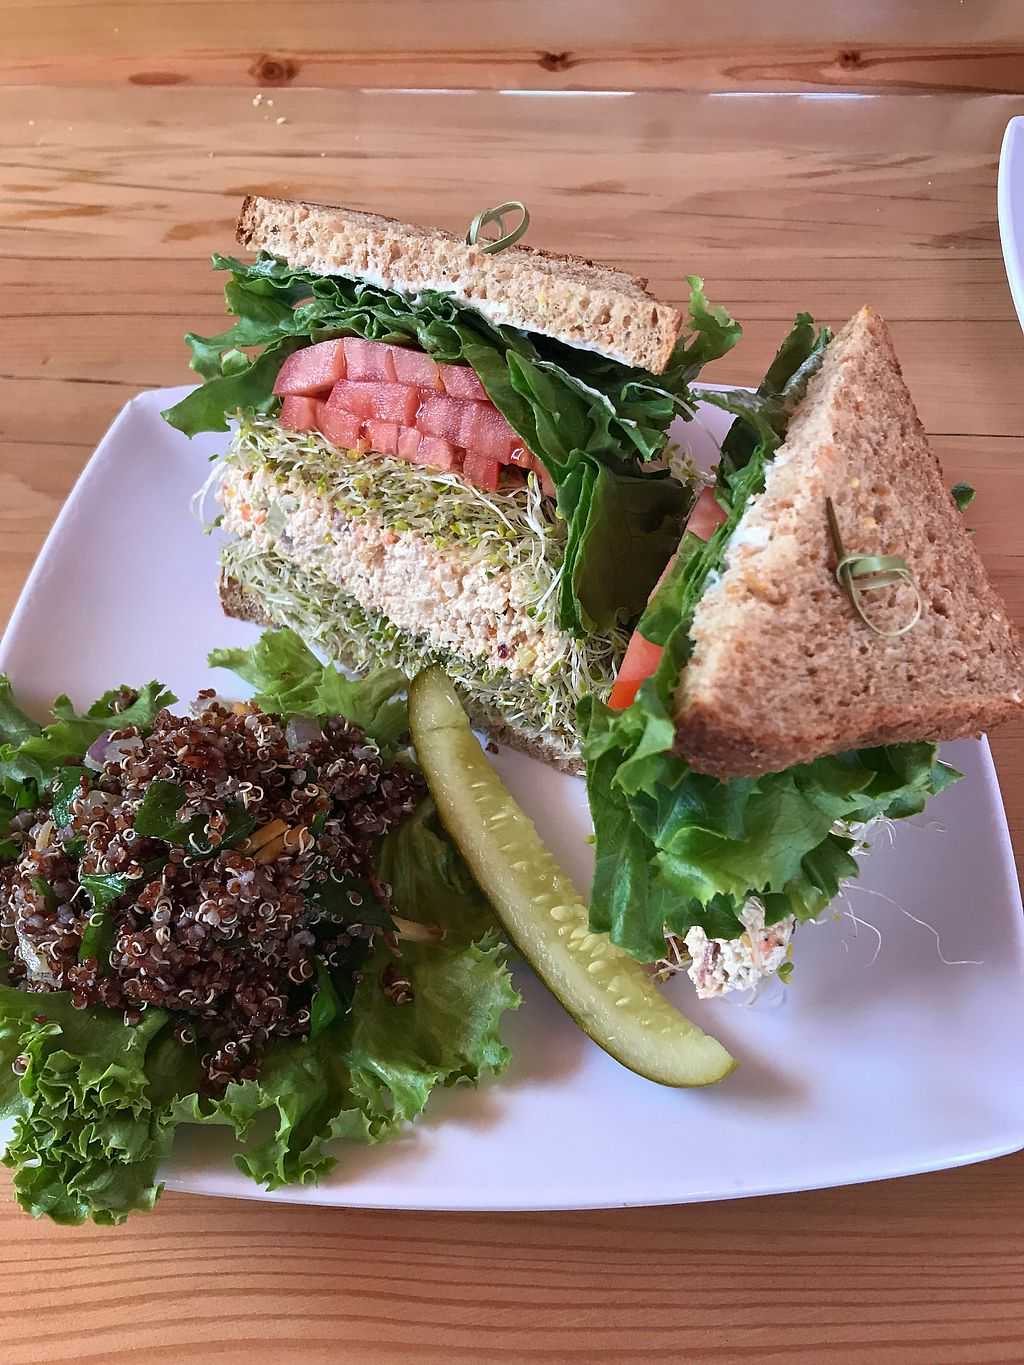 """Photo of Natural Sister Cafe  by <a href=""""/members/profile/Birgit"""">Birgit</a> <br/>Best eggless sandwich ever <br/> May 6, 2018  - <a href='/contact/abuse/image/18427/395861'>Report</a>"""